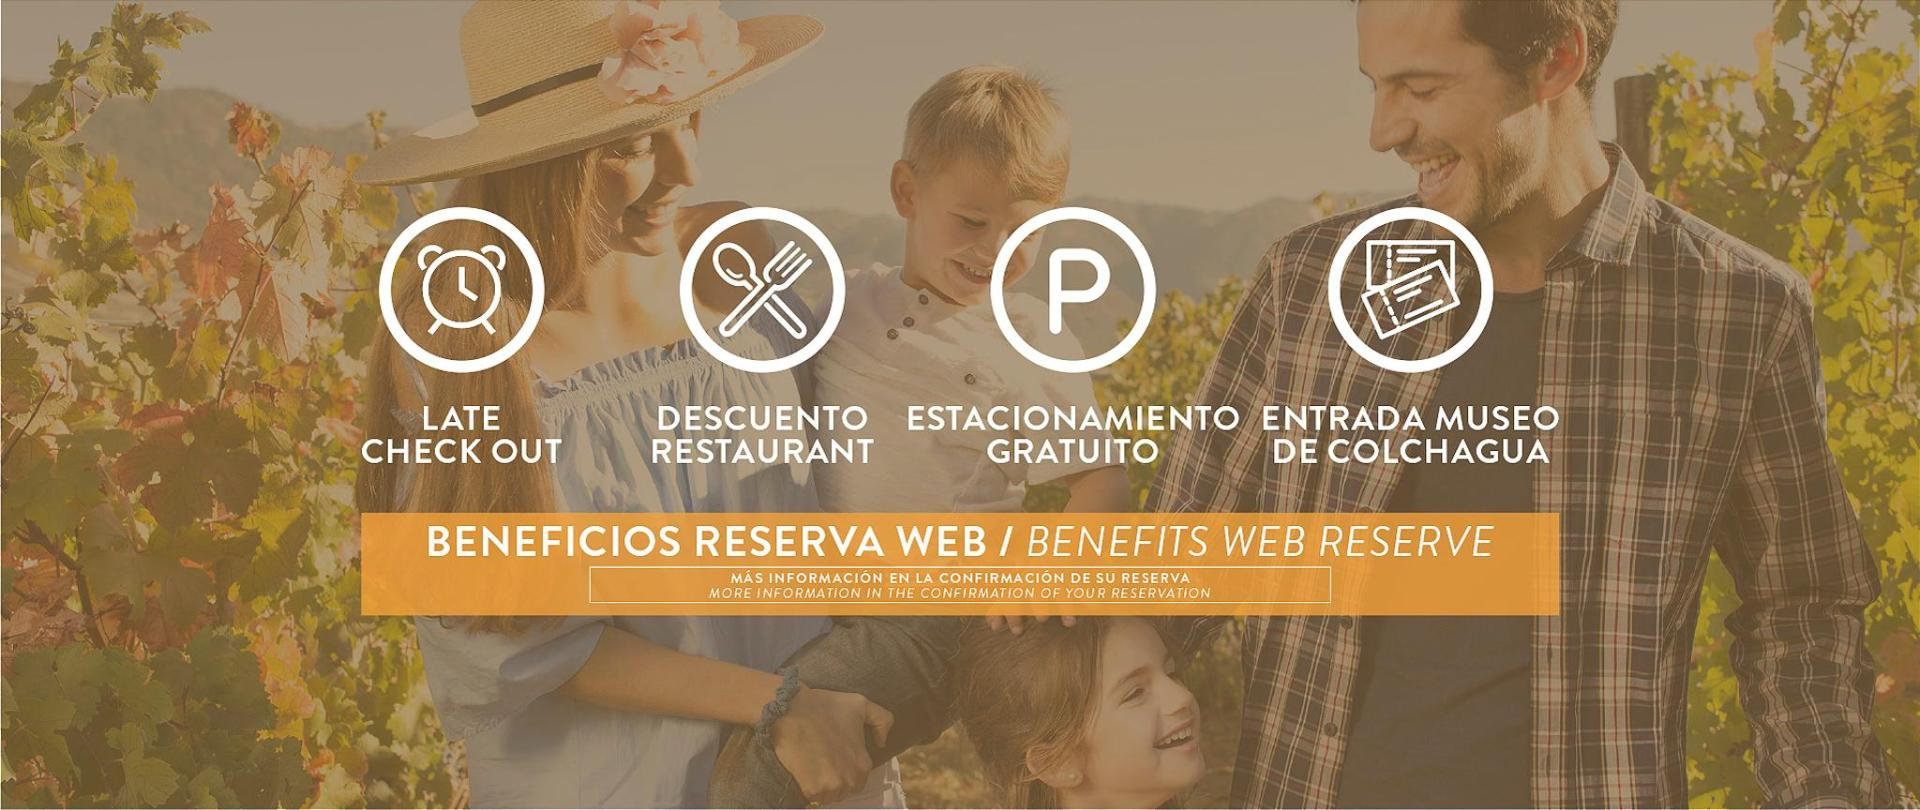 Beneficios web.png